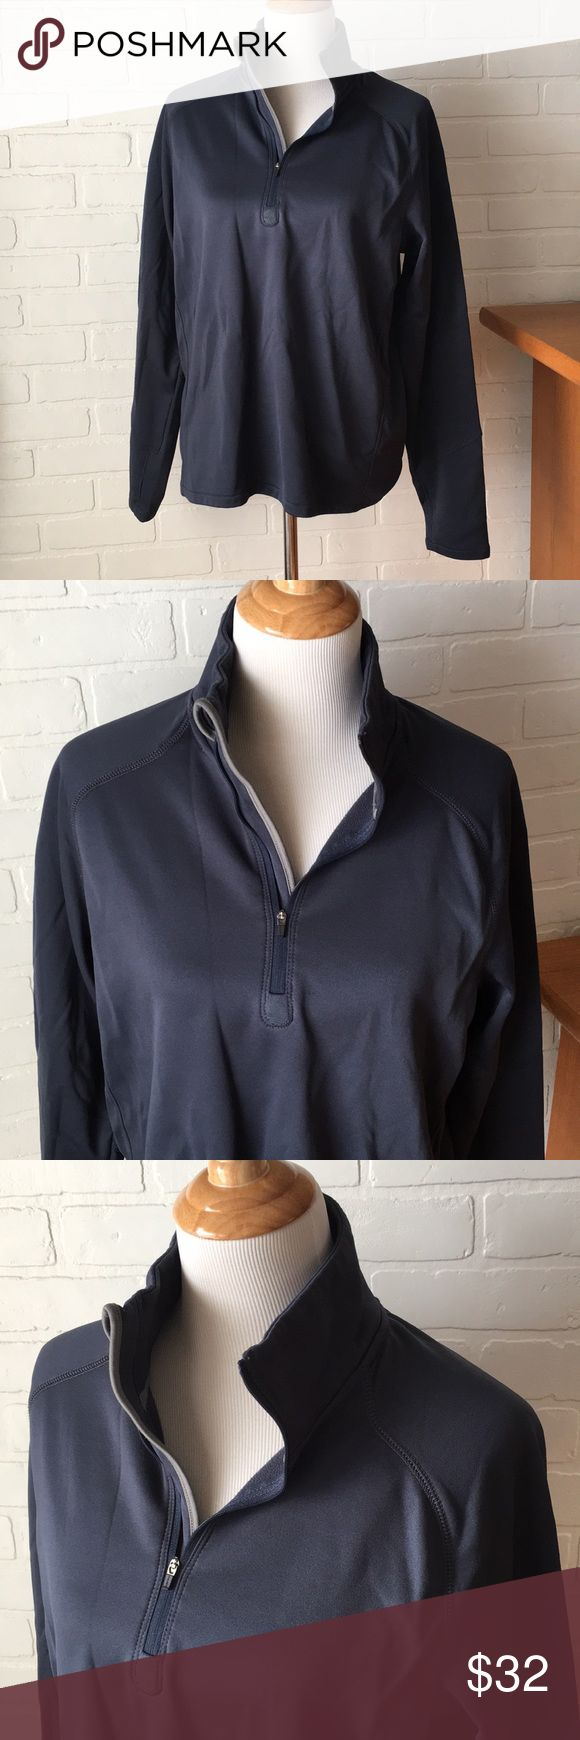 Timberland quarter zip Great condition, very warm. Has thumb holes and fleece interior. Only worn a few times. Timberland Shirts Sweatshirts & Hoodies